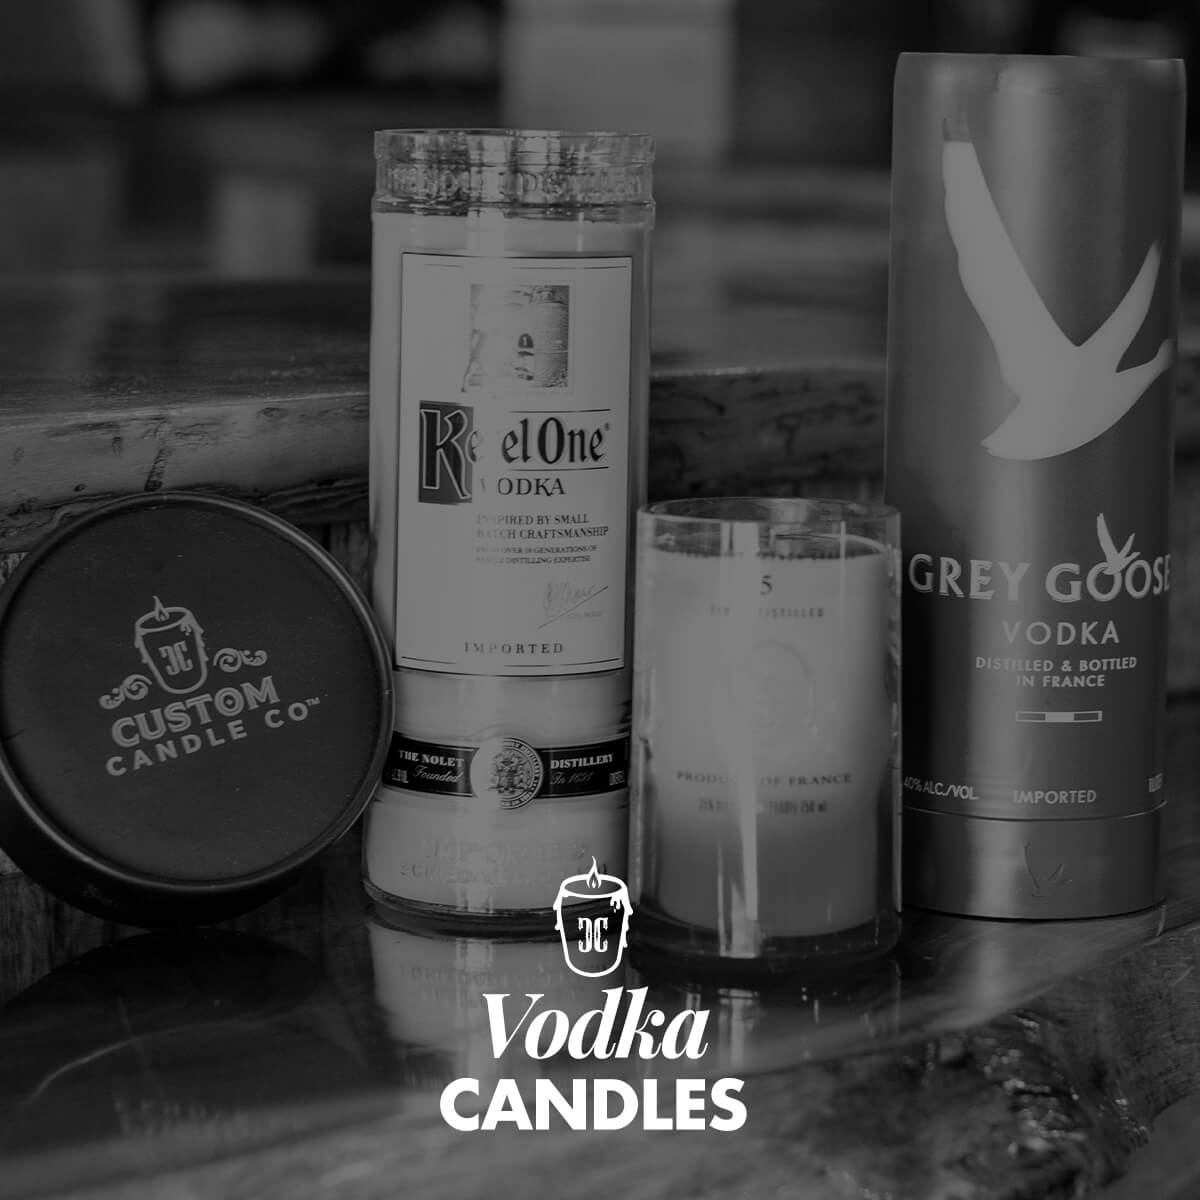 vodka-candles-customcandleco-1